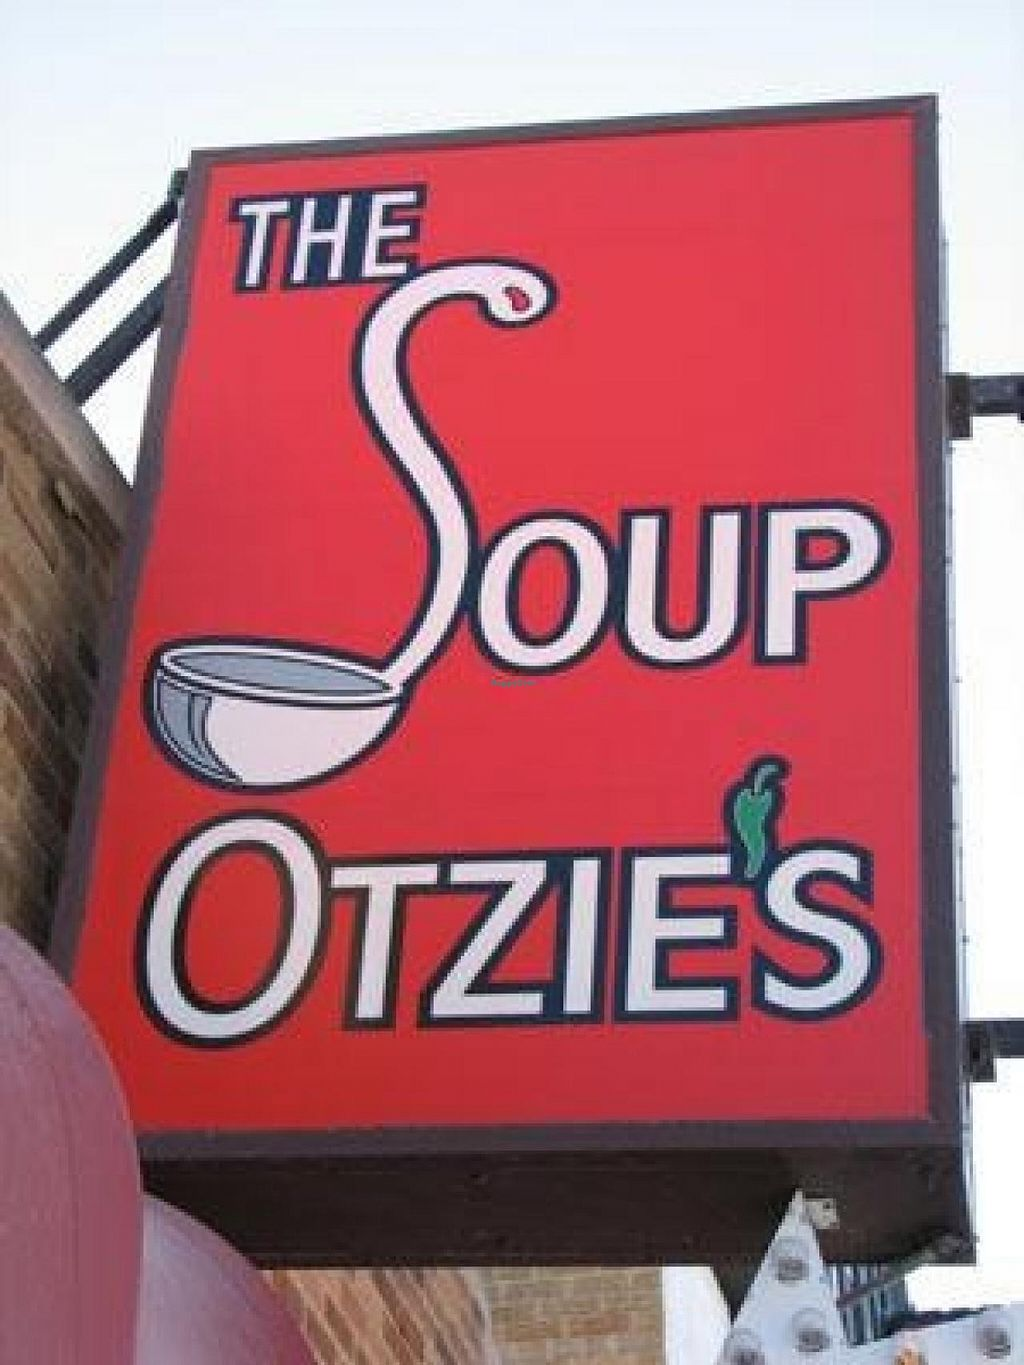 """Photo of Soup Otzies  by <a href=""""/members/profile/community"""">community</a> <br/>Soup Otzies <br/> February 9, 2014  - <a href='/contact/abuse/image/44935/64003'>Report</a>"""